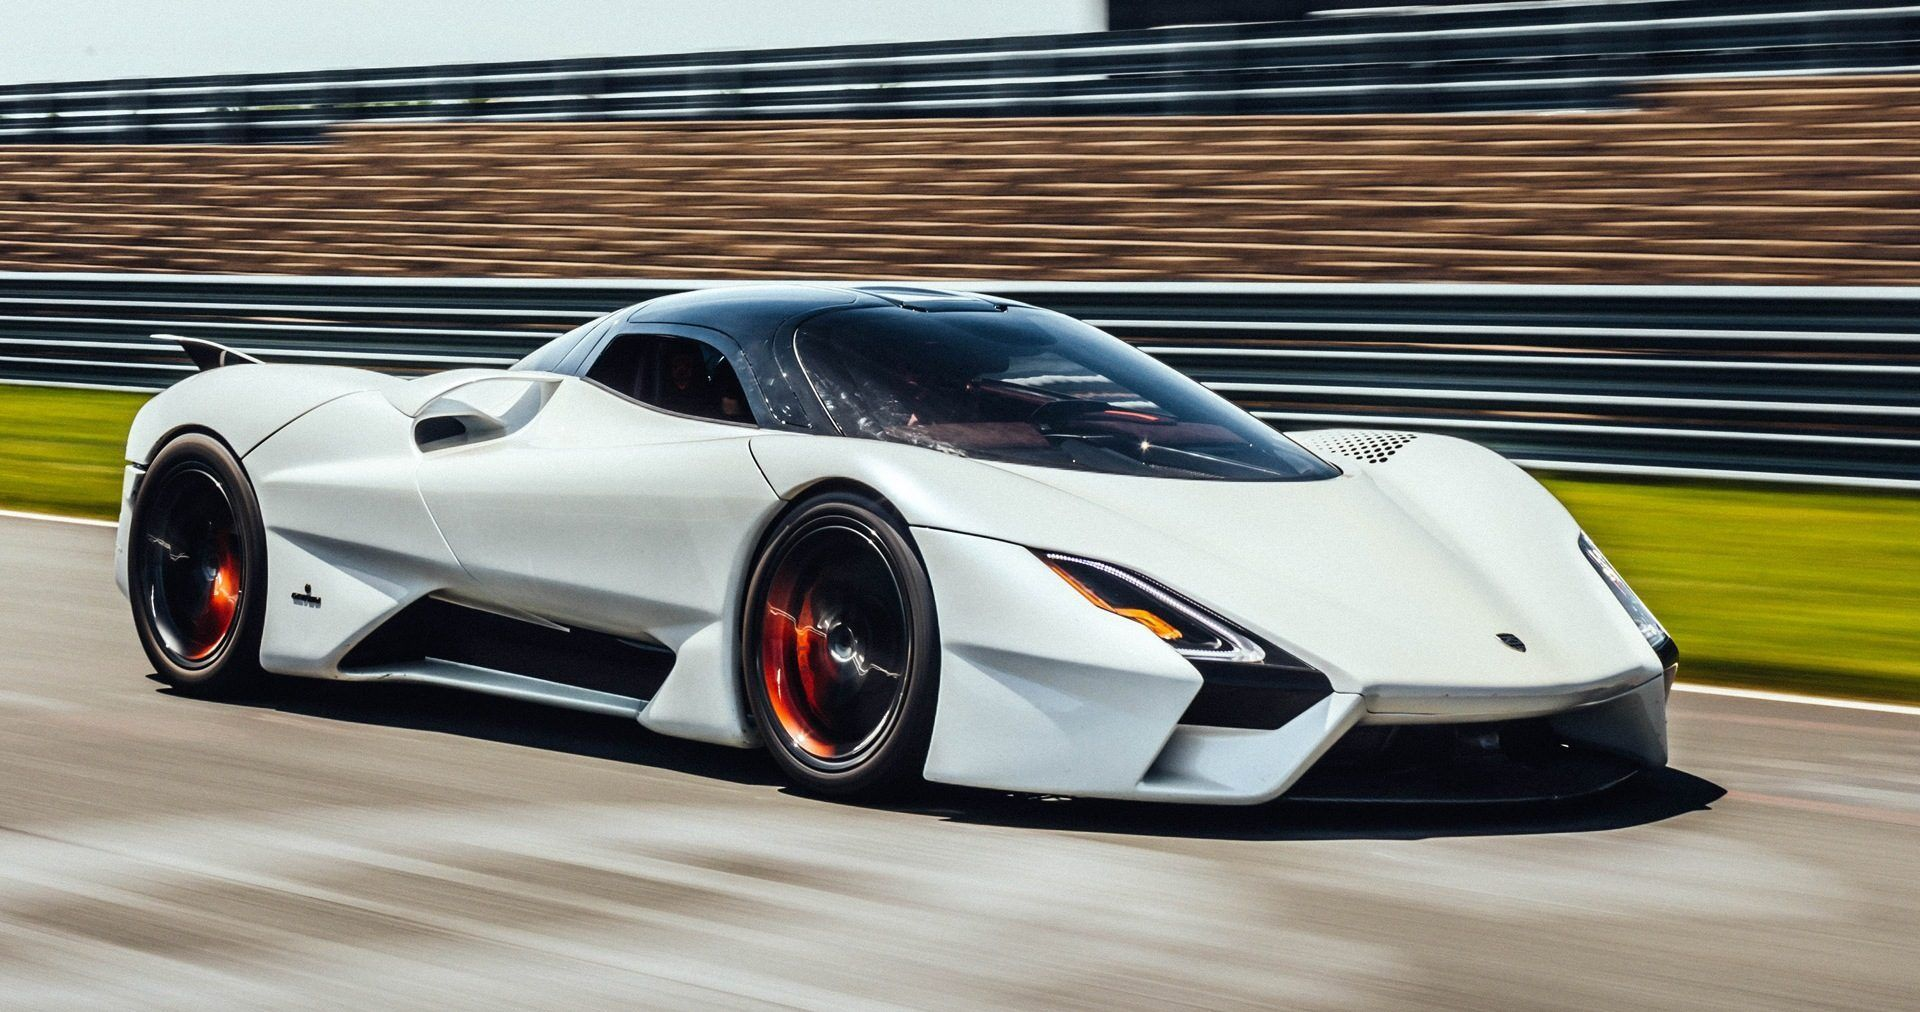 These Cars Have The World's Craziest Power-To-Weight Ratios